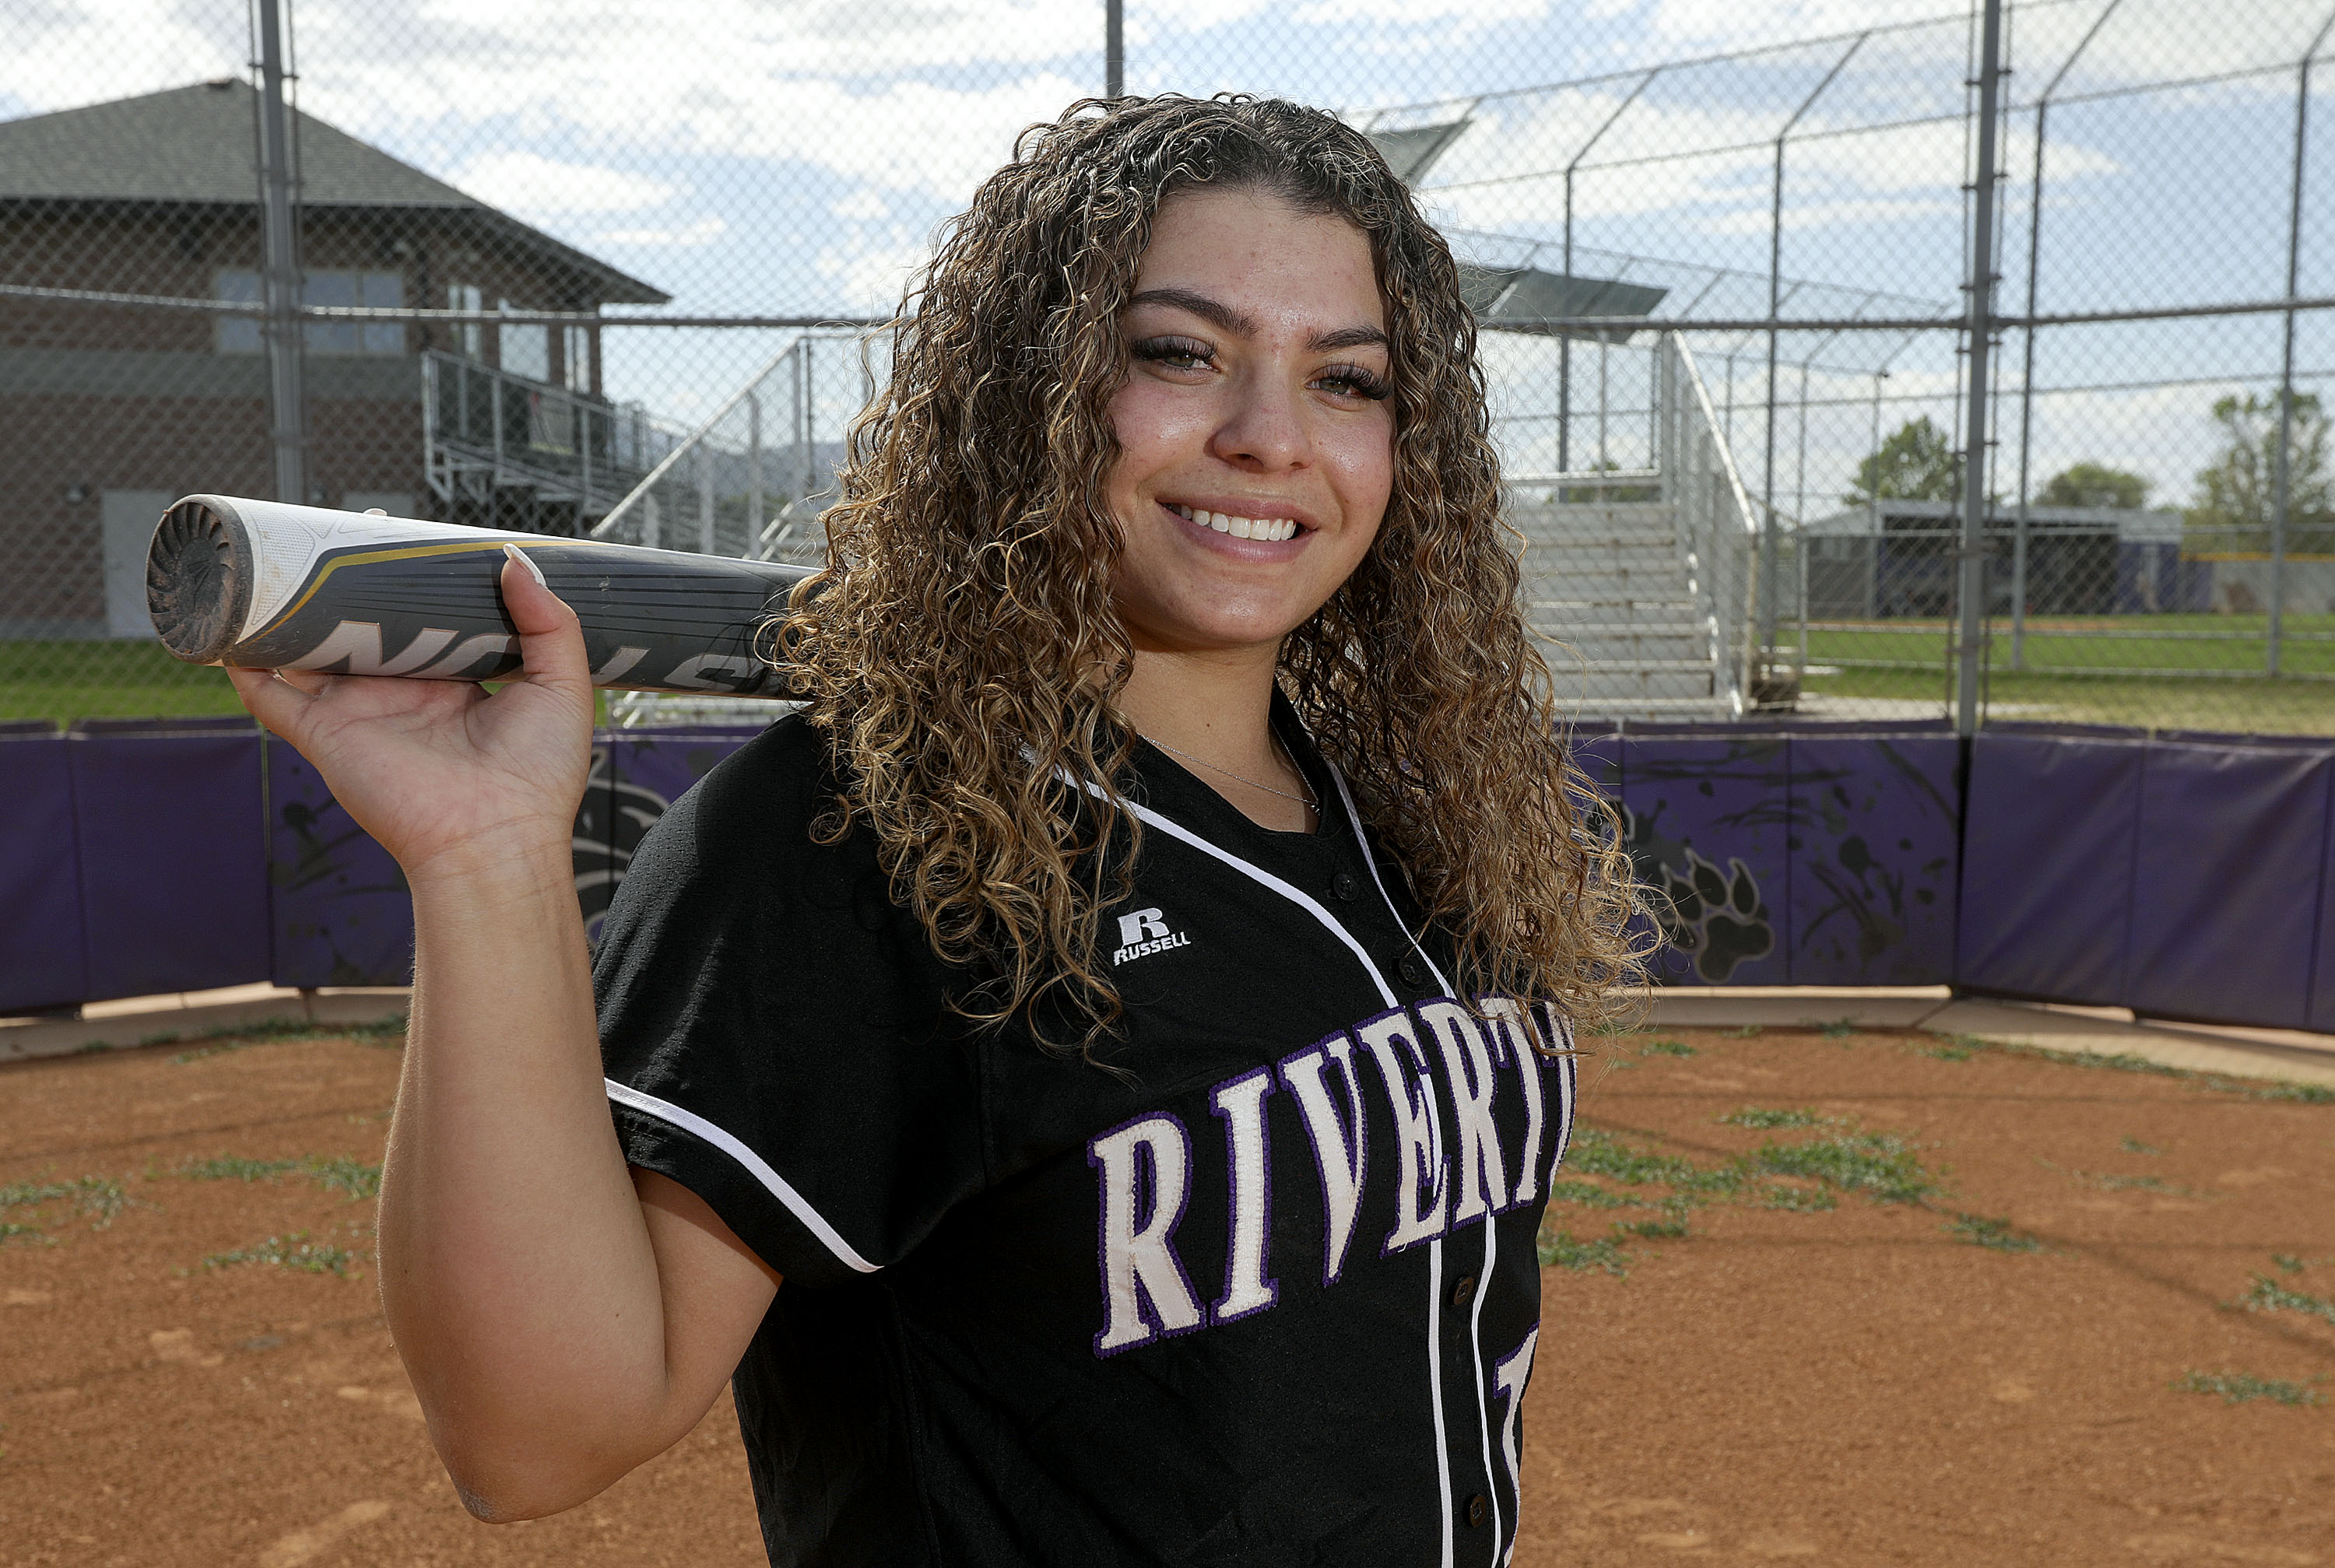 Riverton High School's Chloe Borges is the Deseret News 2021 Ms. Softball winner for All-State.